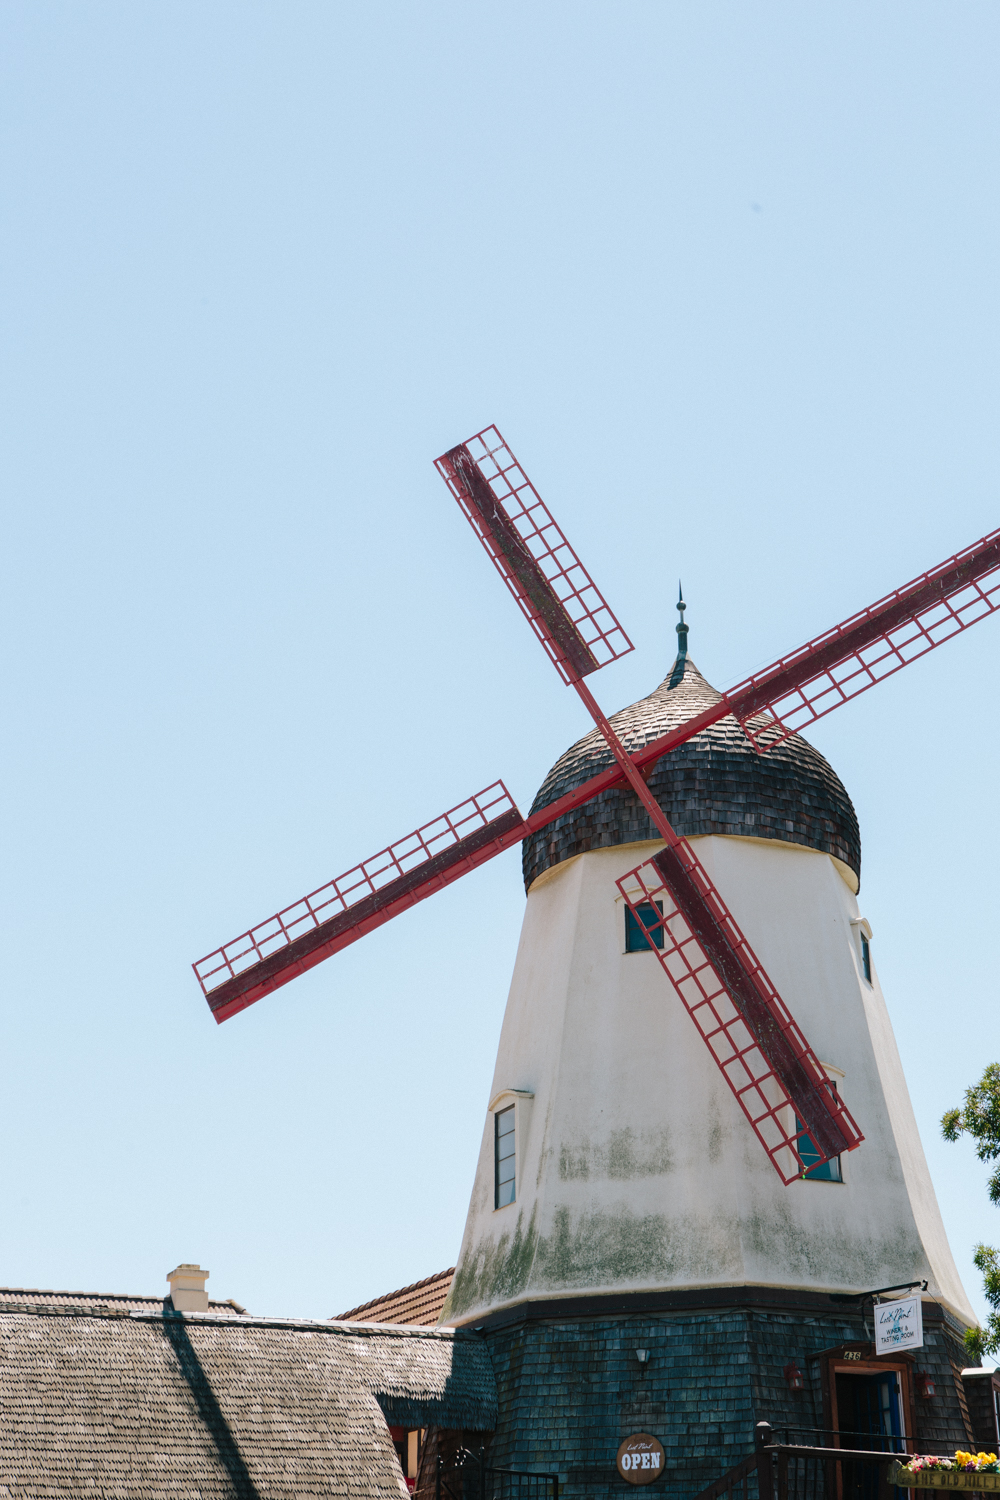 One of the signature Solvang landmarks.